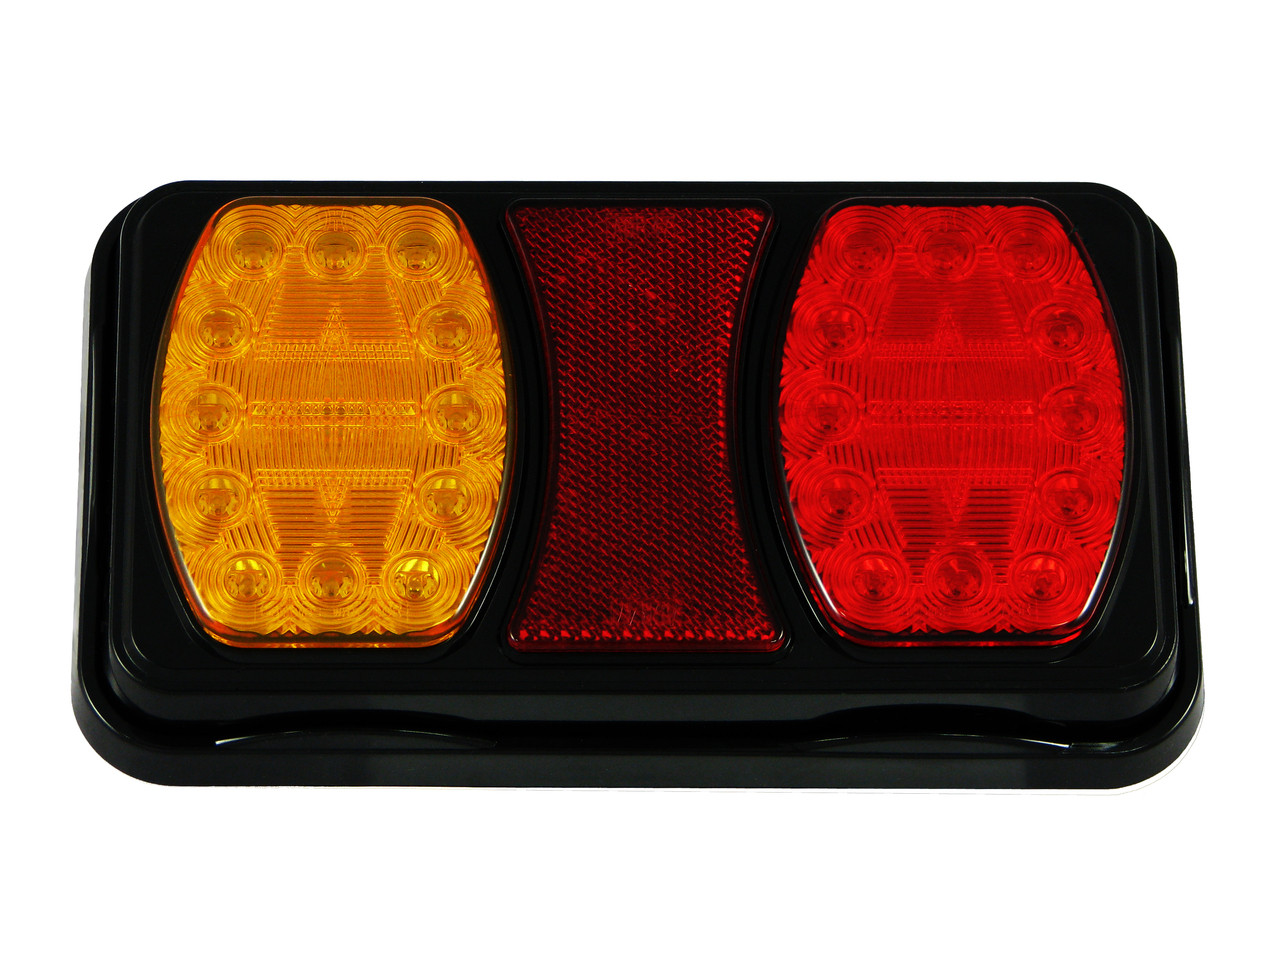 228RV. Compact LED Tail Light. Stop, Tail Indicator Lamp with built-in Reflectors. Quality, Tough Light. Caravan Friendly. Multi-Volt 12 & 24 Volt Systems. BR100AR. Twin Module LED Light.  Truck, Trailer, Ute or Caravan Tail Light Assembly. Built-in Reflector. Great Quality Tail Light. Weather, Vibration and Dust Proof. Ultimate LED